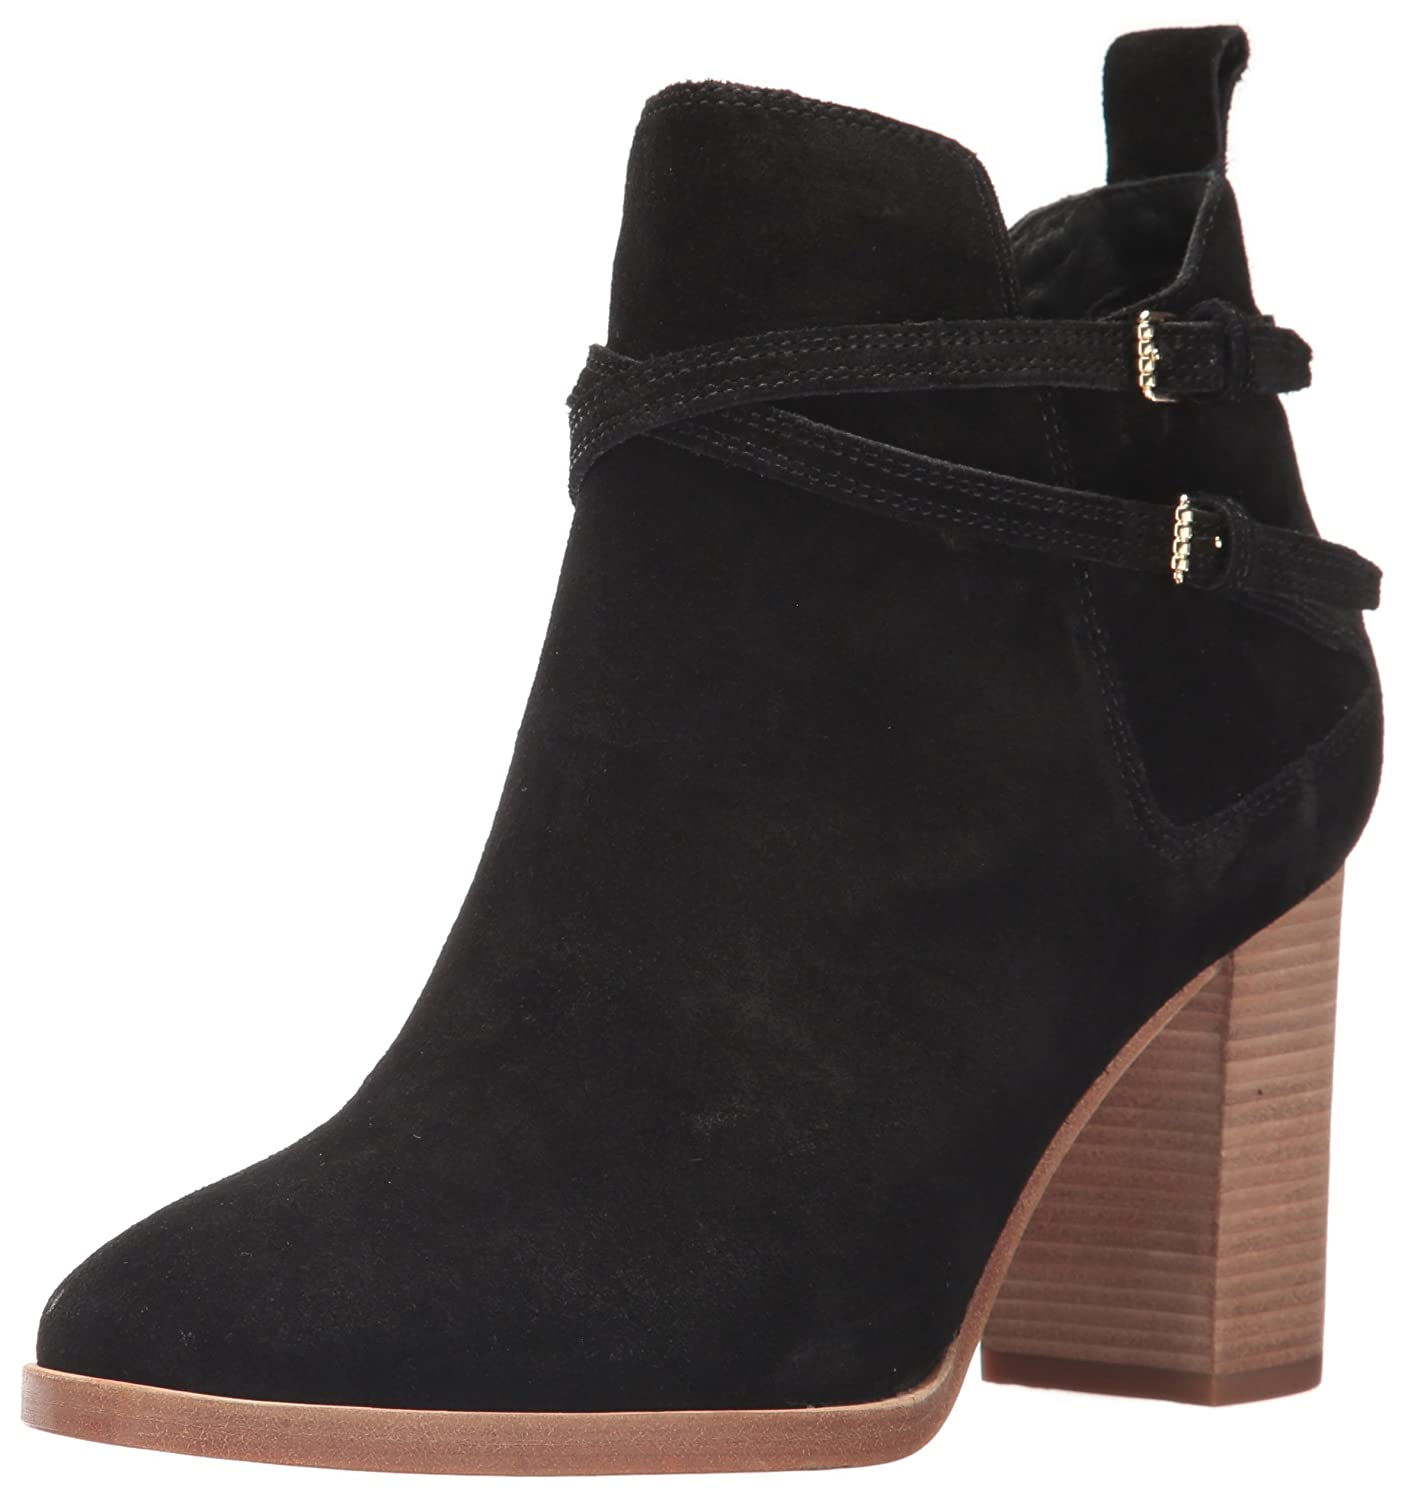 Cole Haan Women's Linnie Bootie Ankle Boot B01ND1Q4VC 6 B(M) US|Black Suede